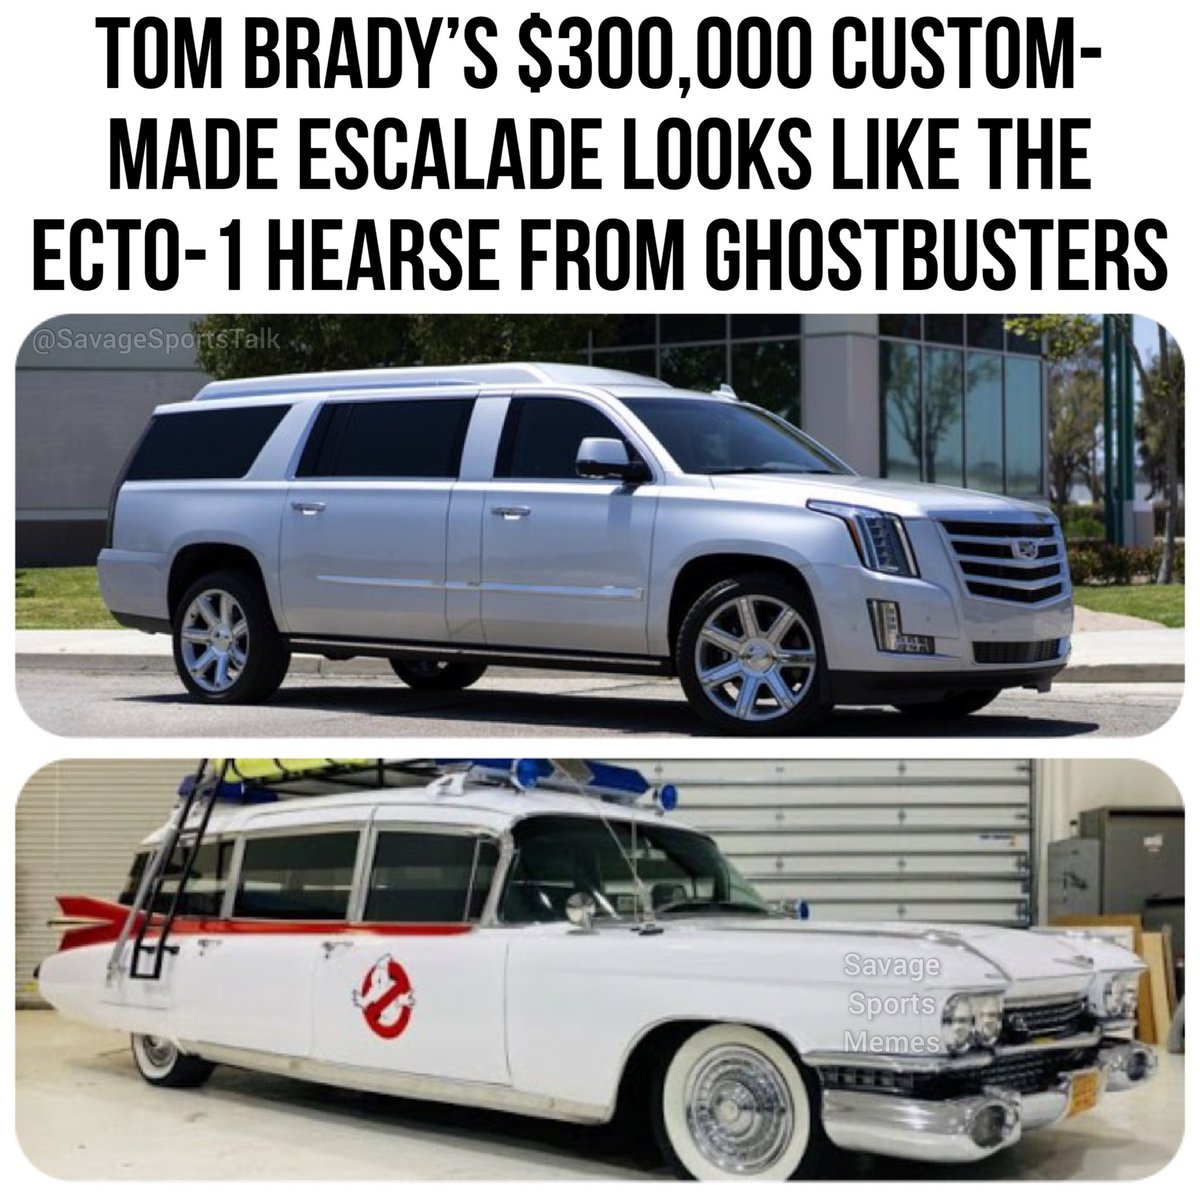 Who you gonna call?  . .   #NFL #NFLmeme #NFLmemes #football #footballmeme #footballmemes #meme #memes #sports #sportsmeme #sportsmemes #tampabay #bucs #buccaneers #tombrady #tb12 #cadillac #escalade #ghostbusters #hearsepic.twitter.com/MTDMpQy7fX